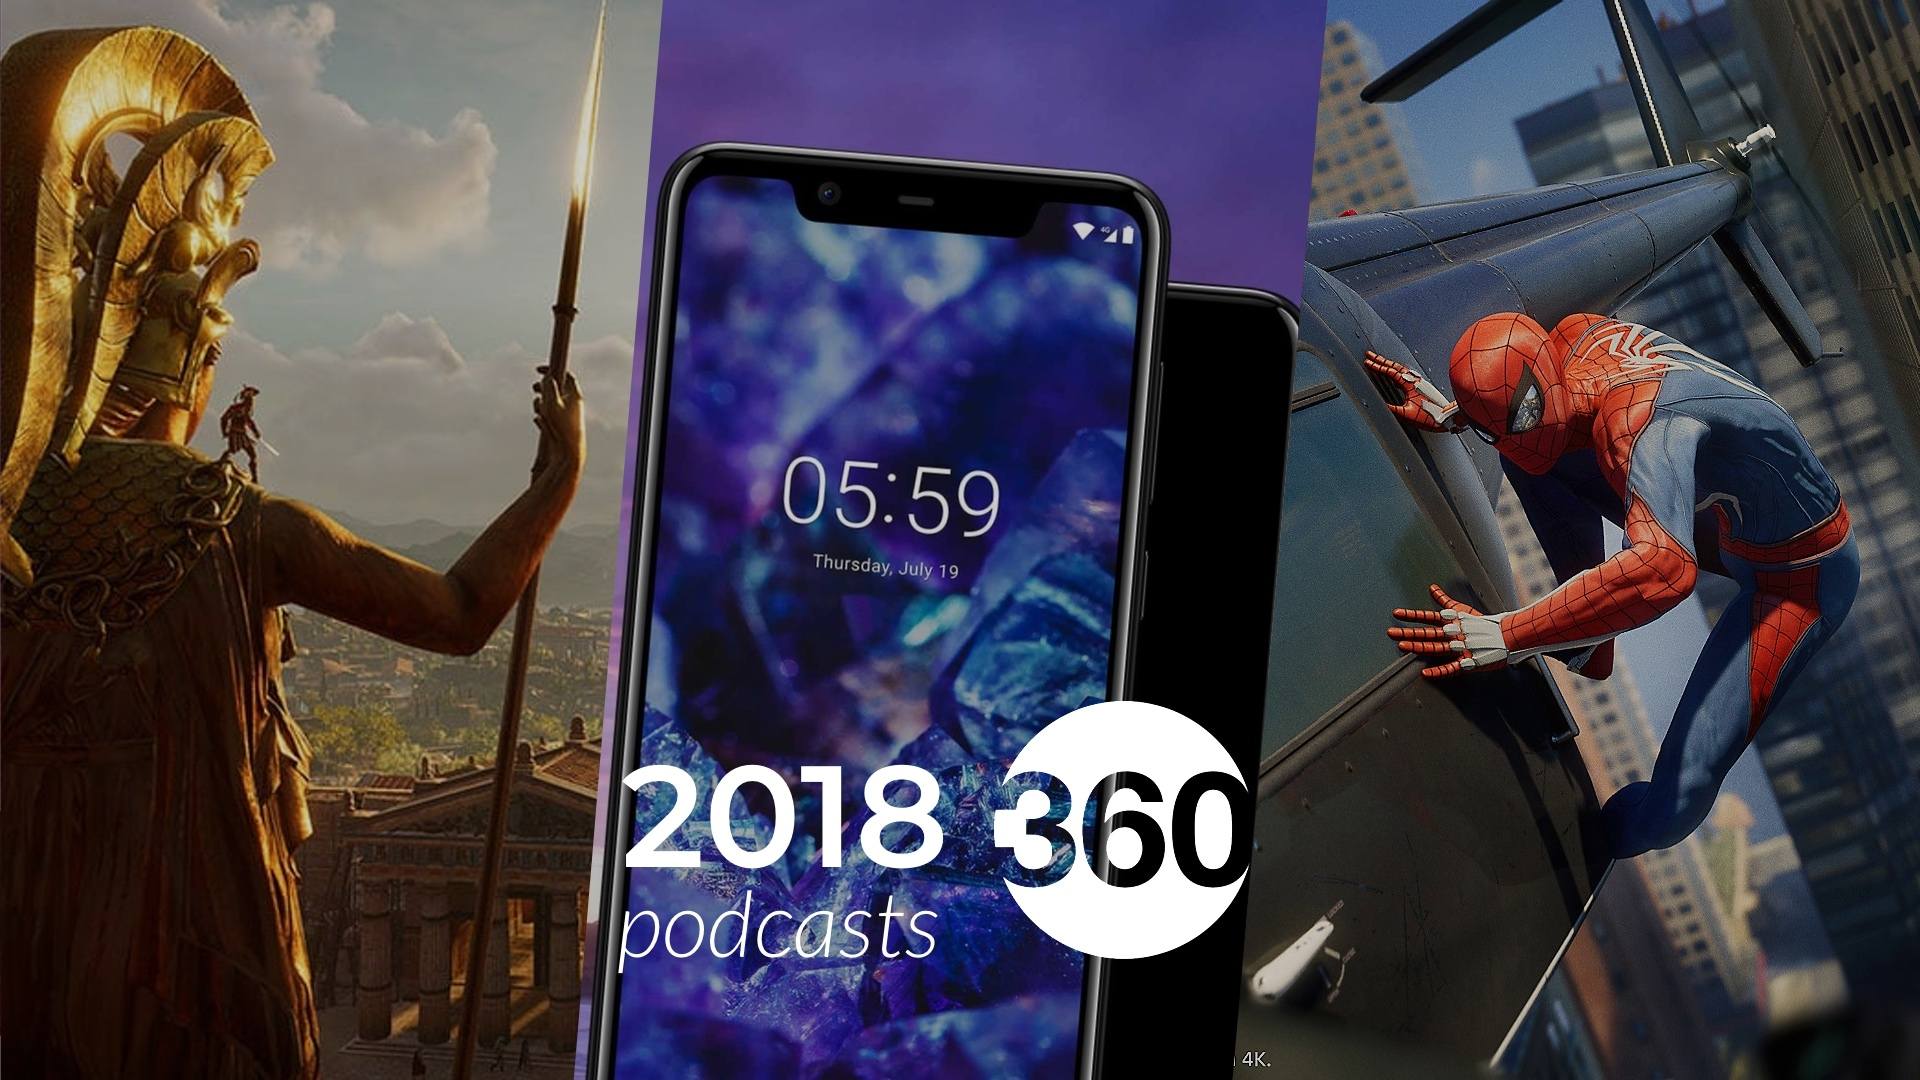 Gadgets 360's Most Popular Podcasts of 2018